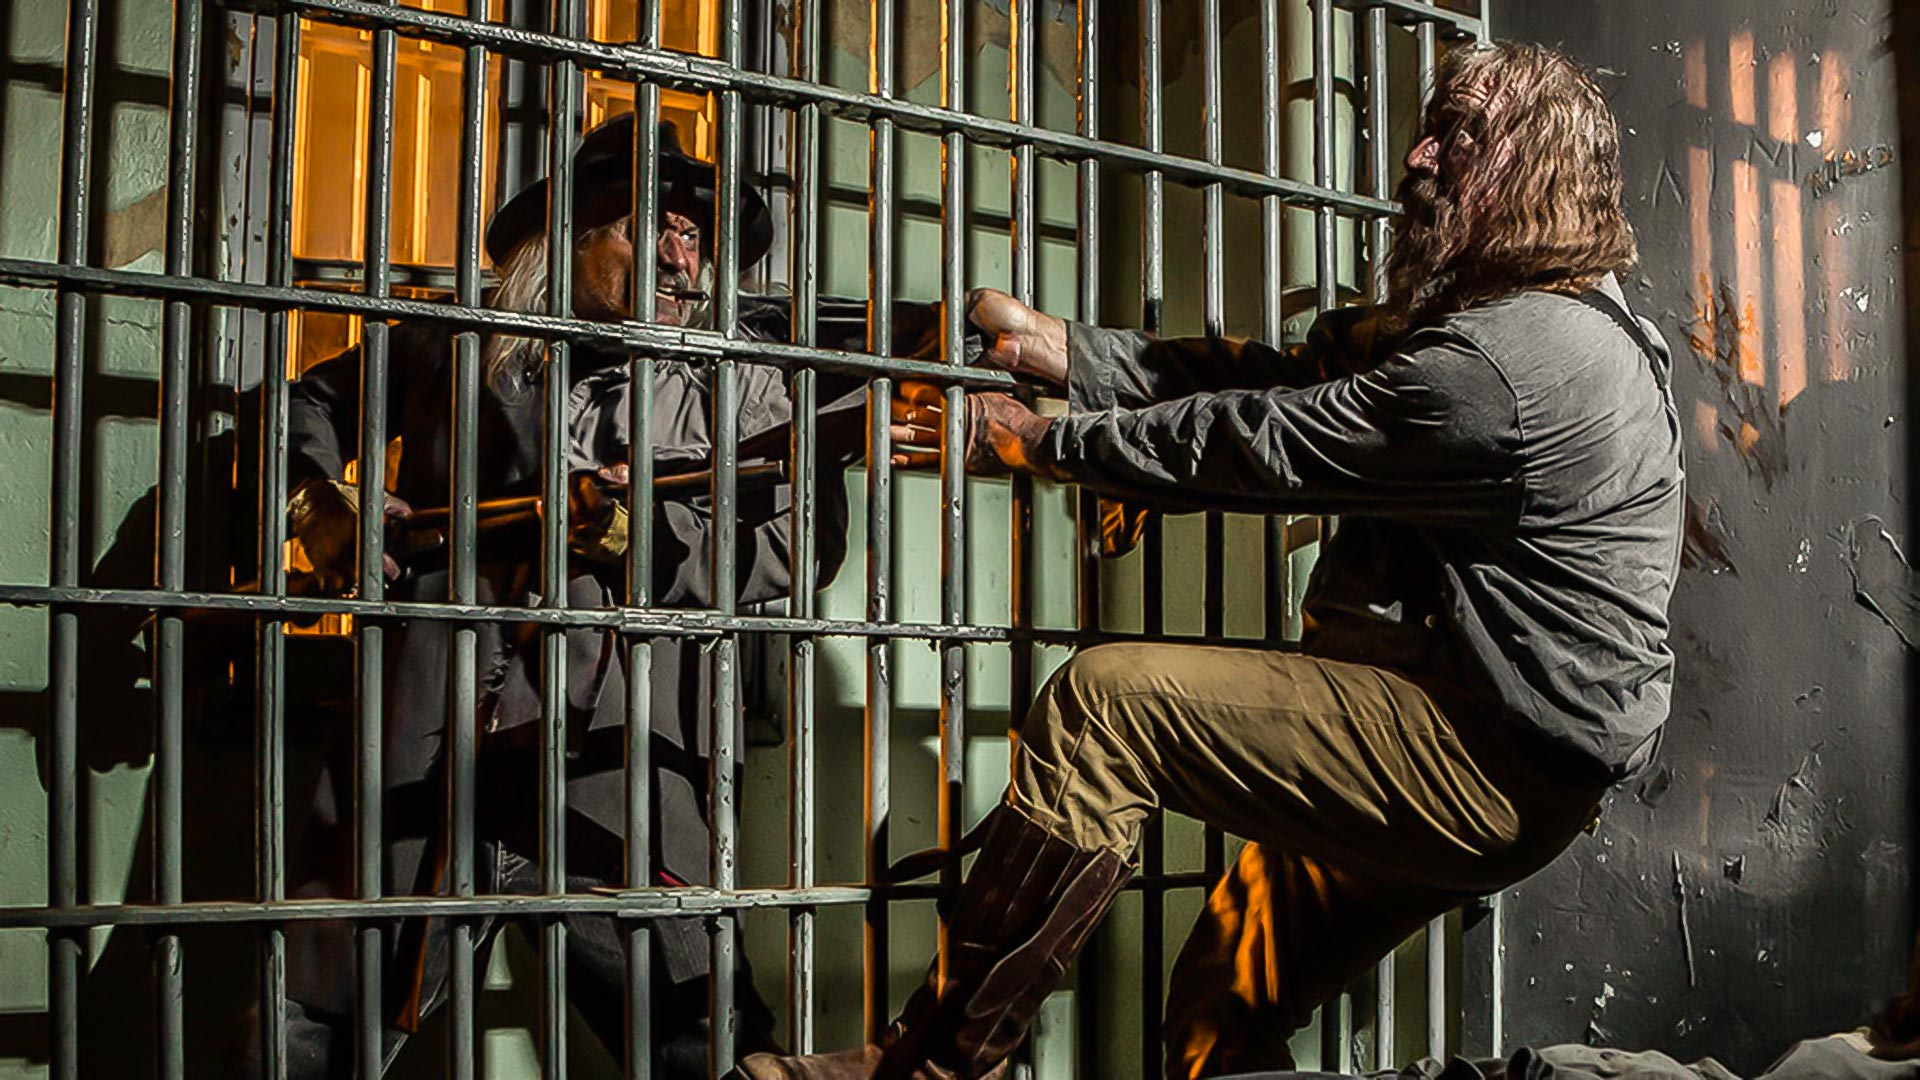 An image from the promotional materials of the Haunted Jail at Globe.